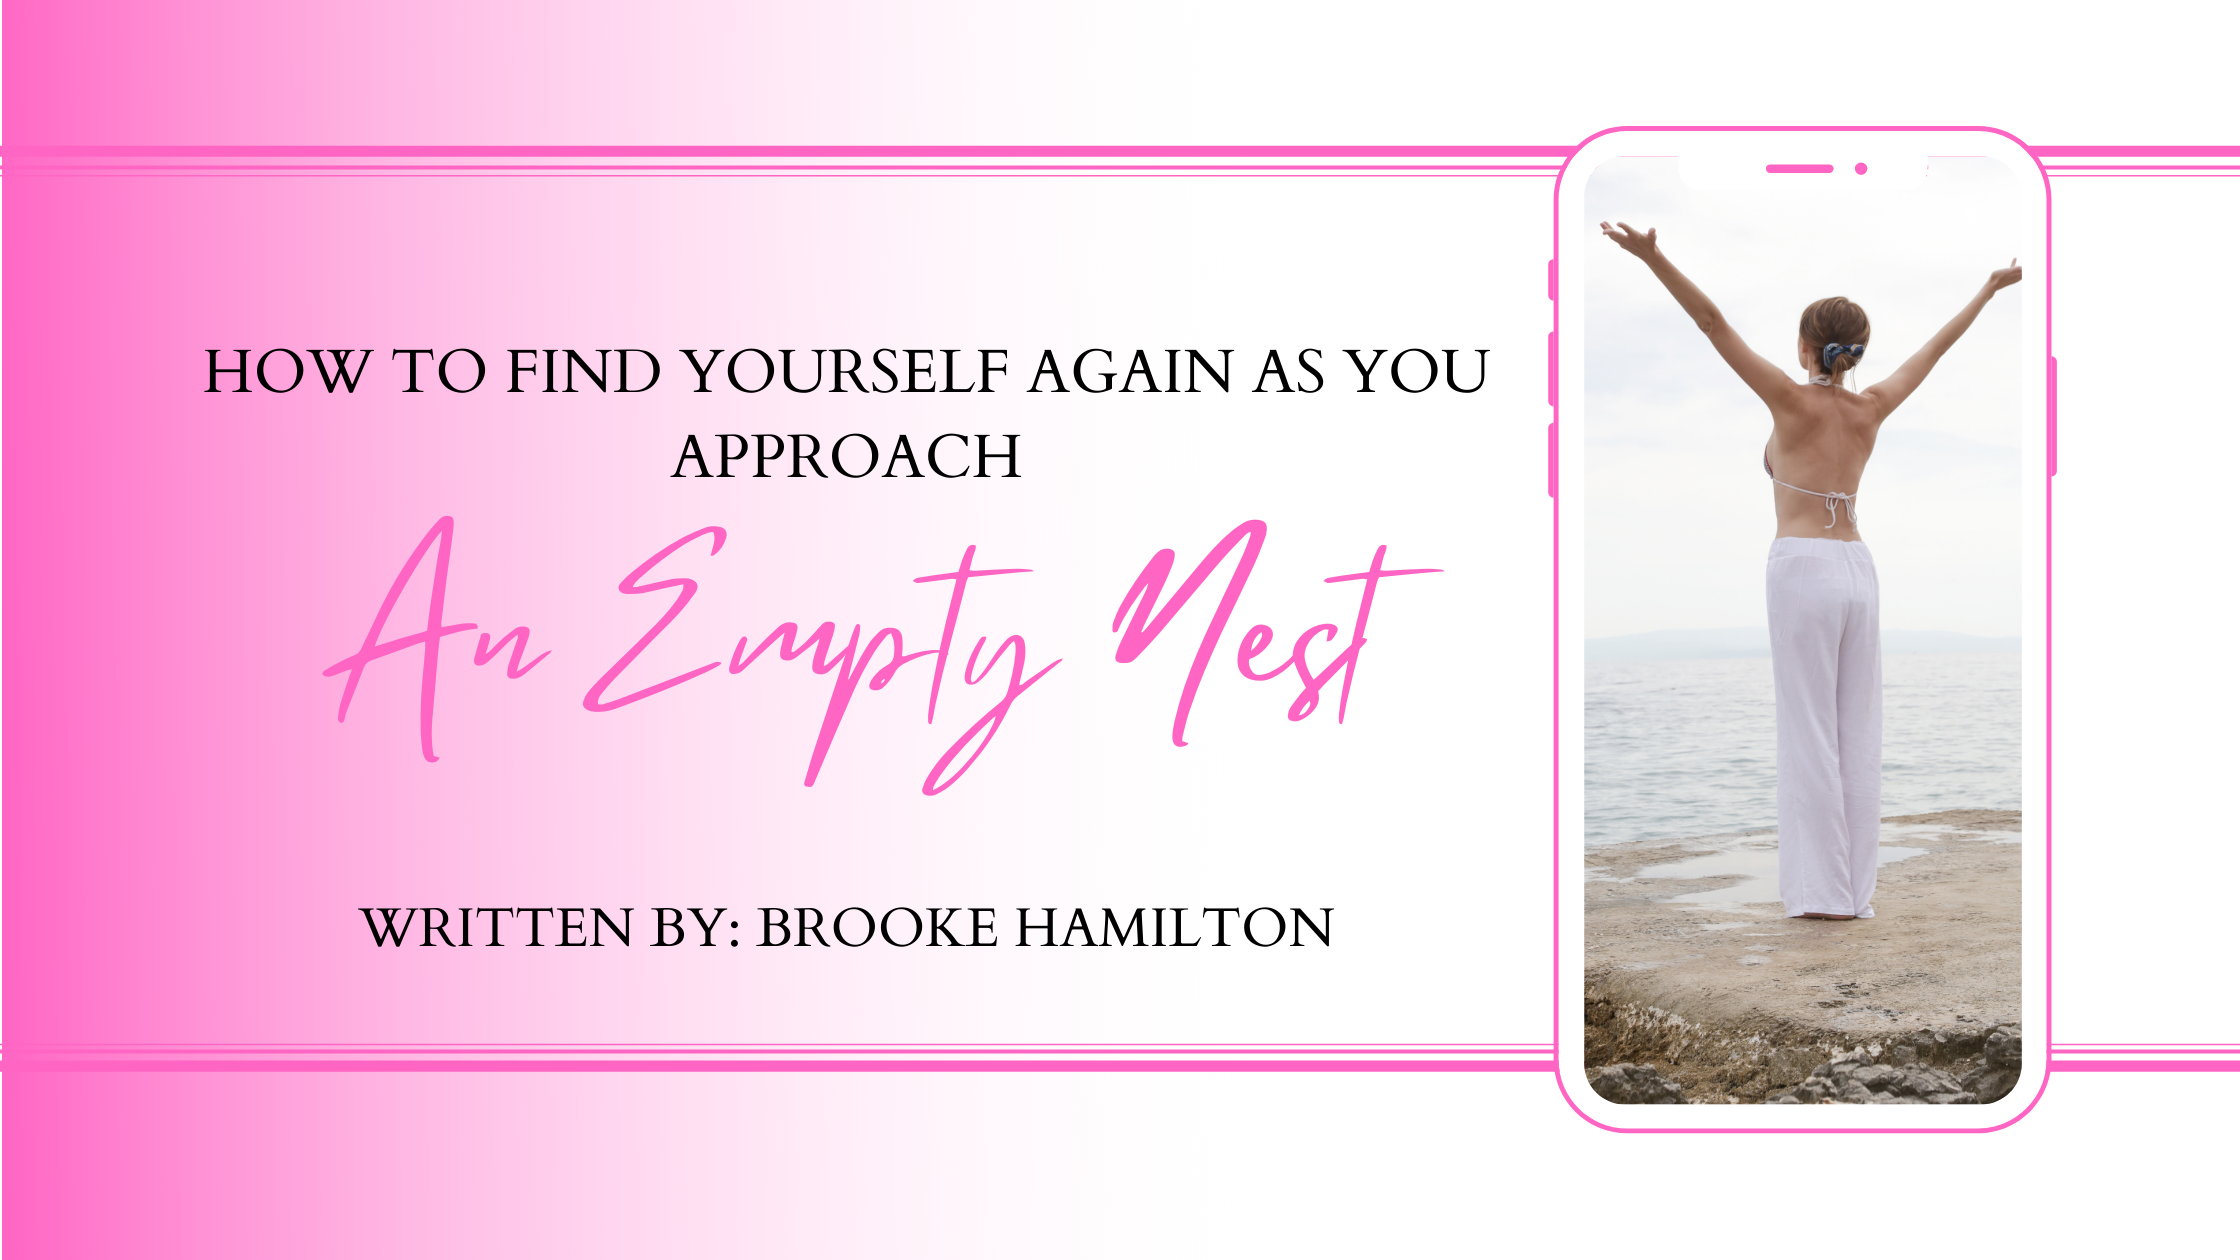 How to find yourself again as you approach an empty nest